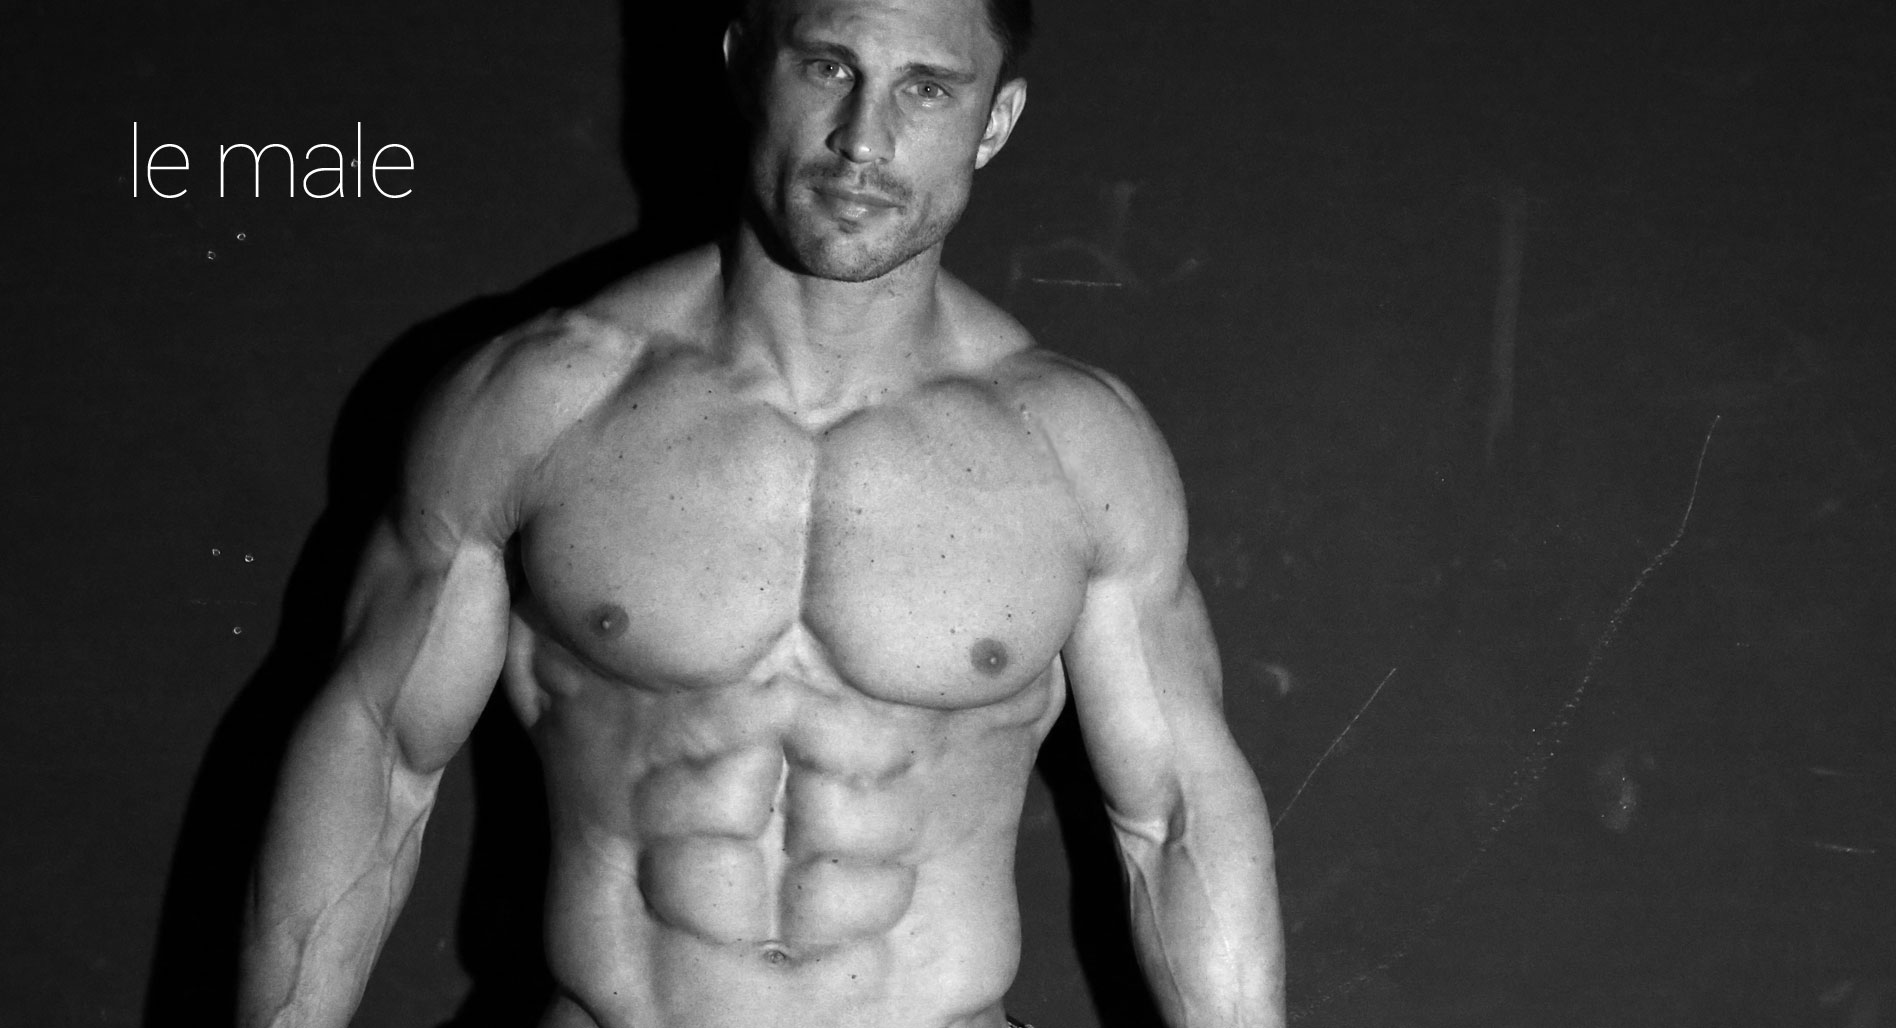 Le Male: LA Muscle Male bodies